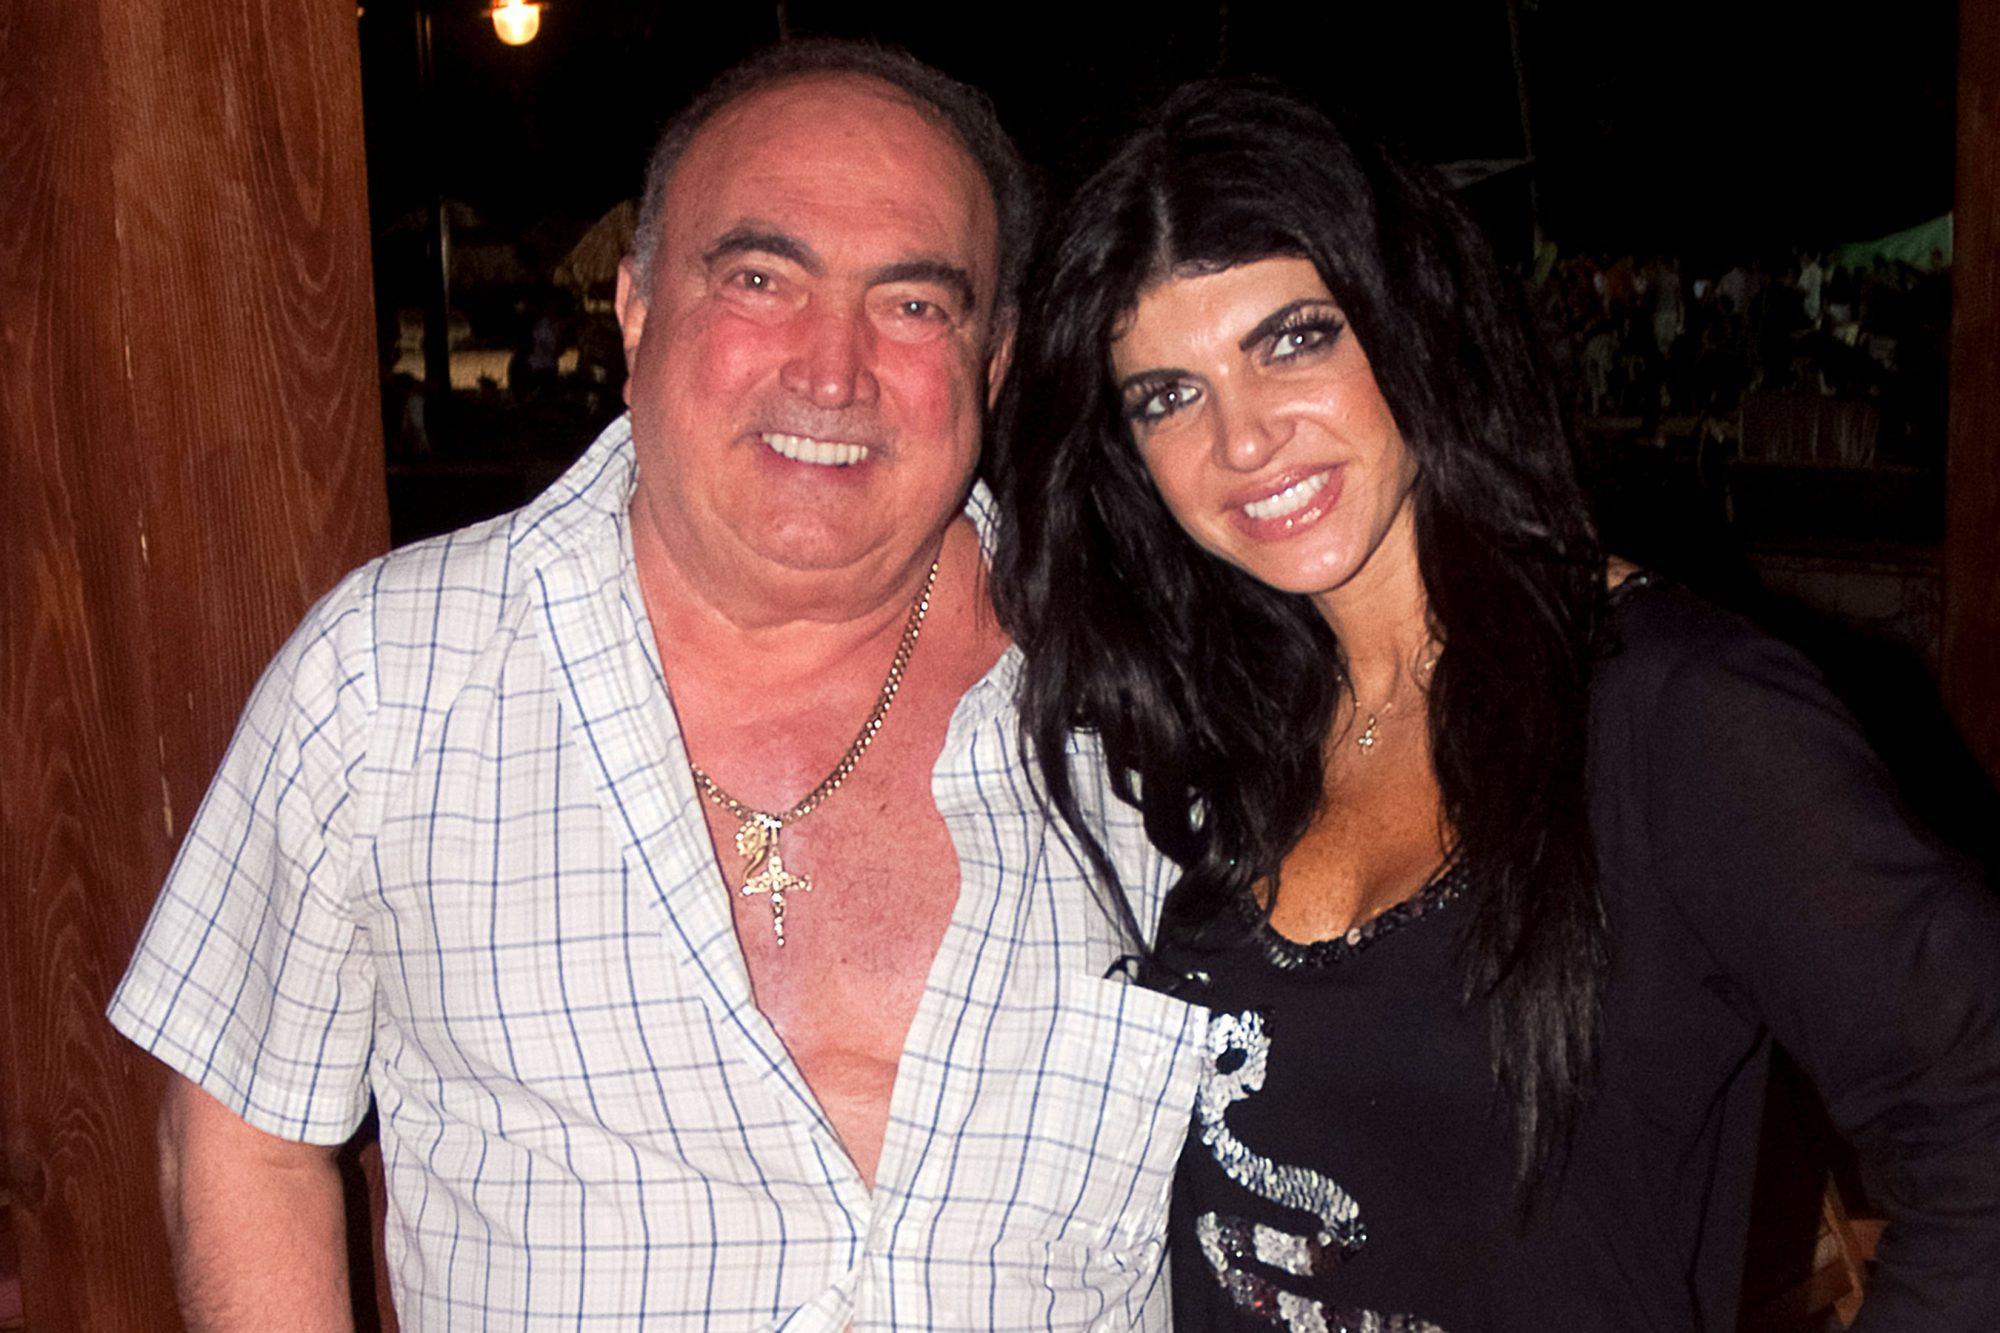 Teresa Giudice and father Giacinto Gorga